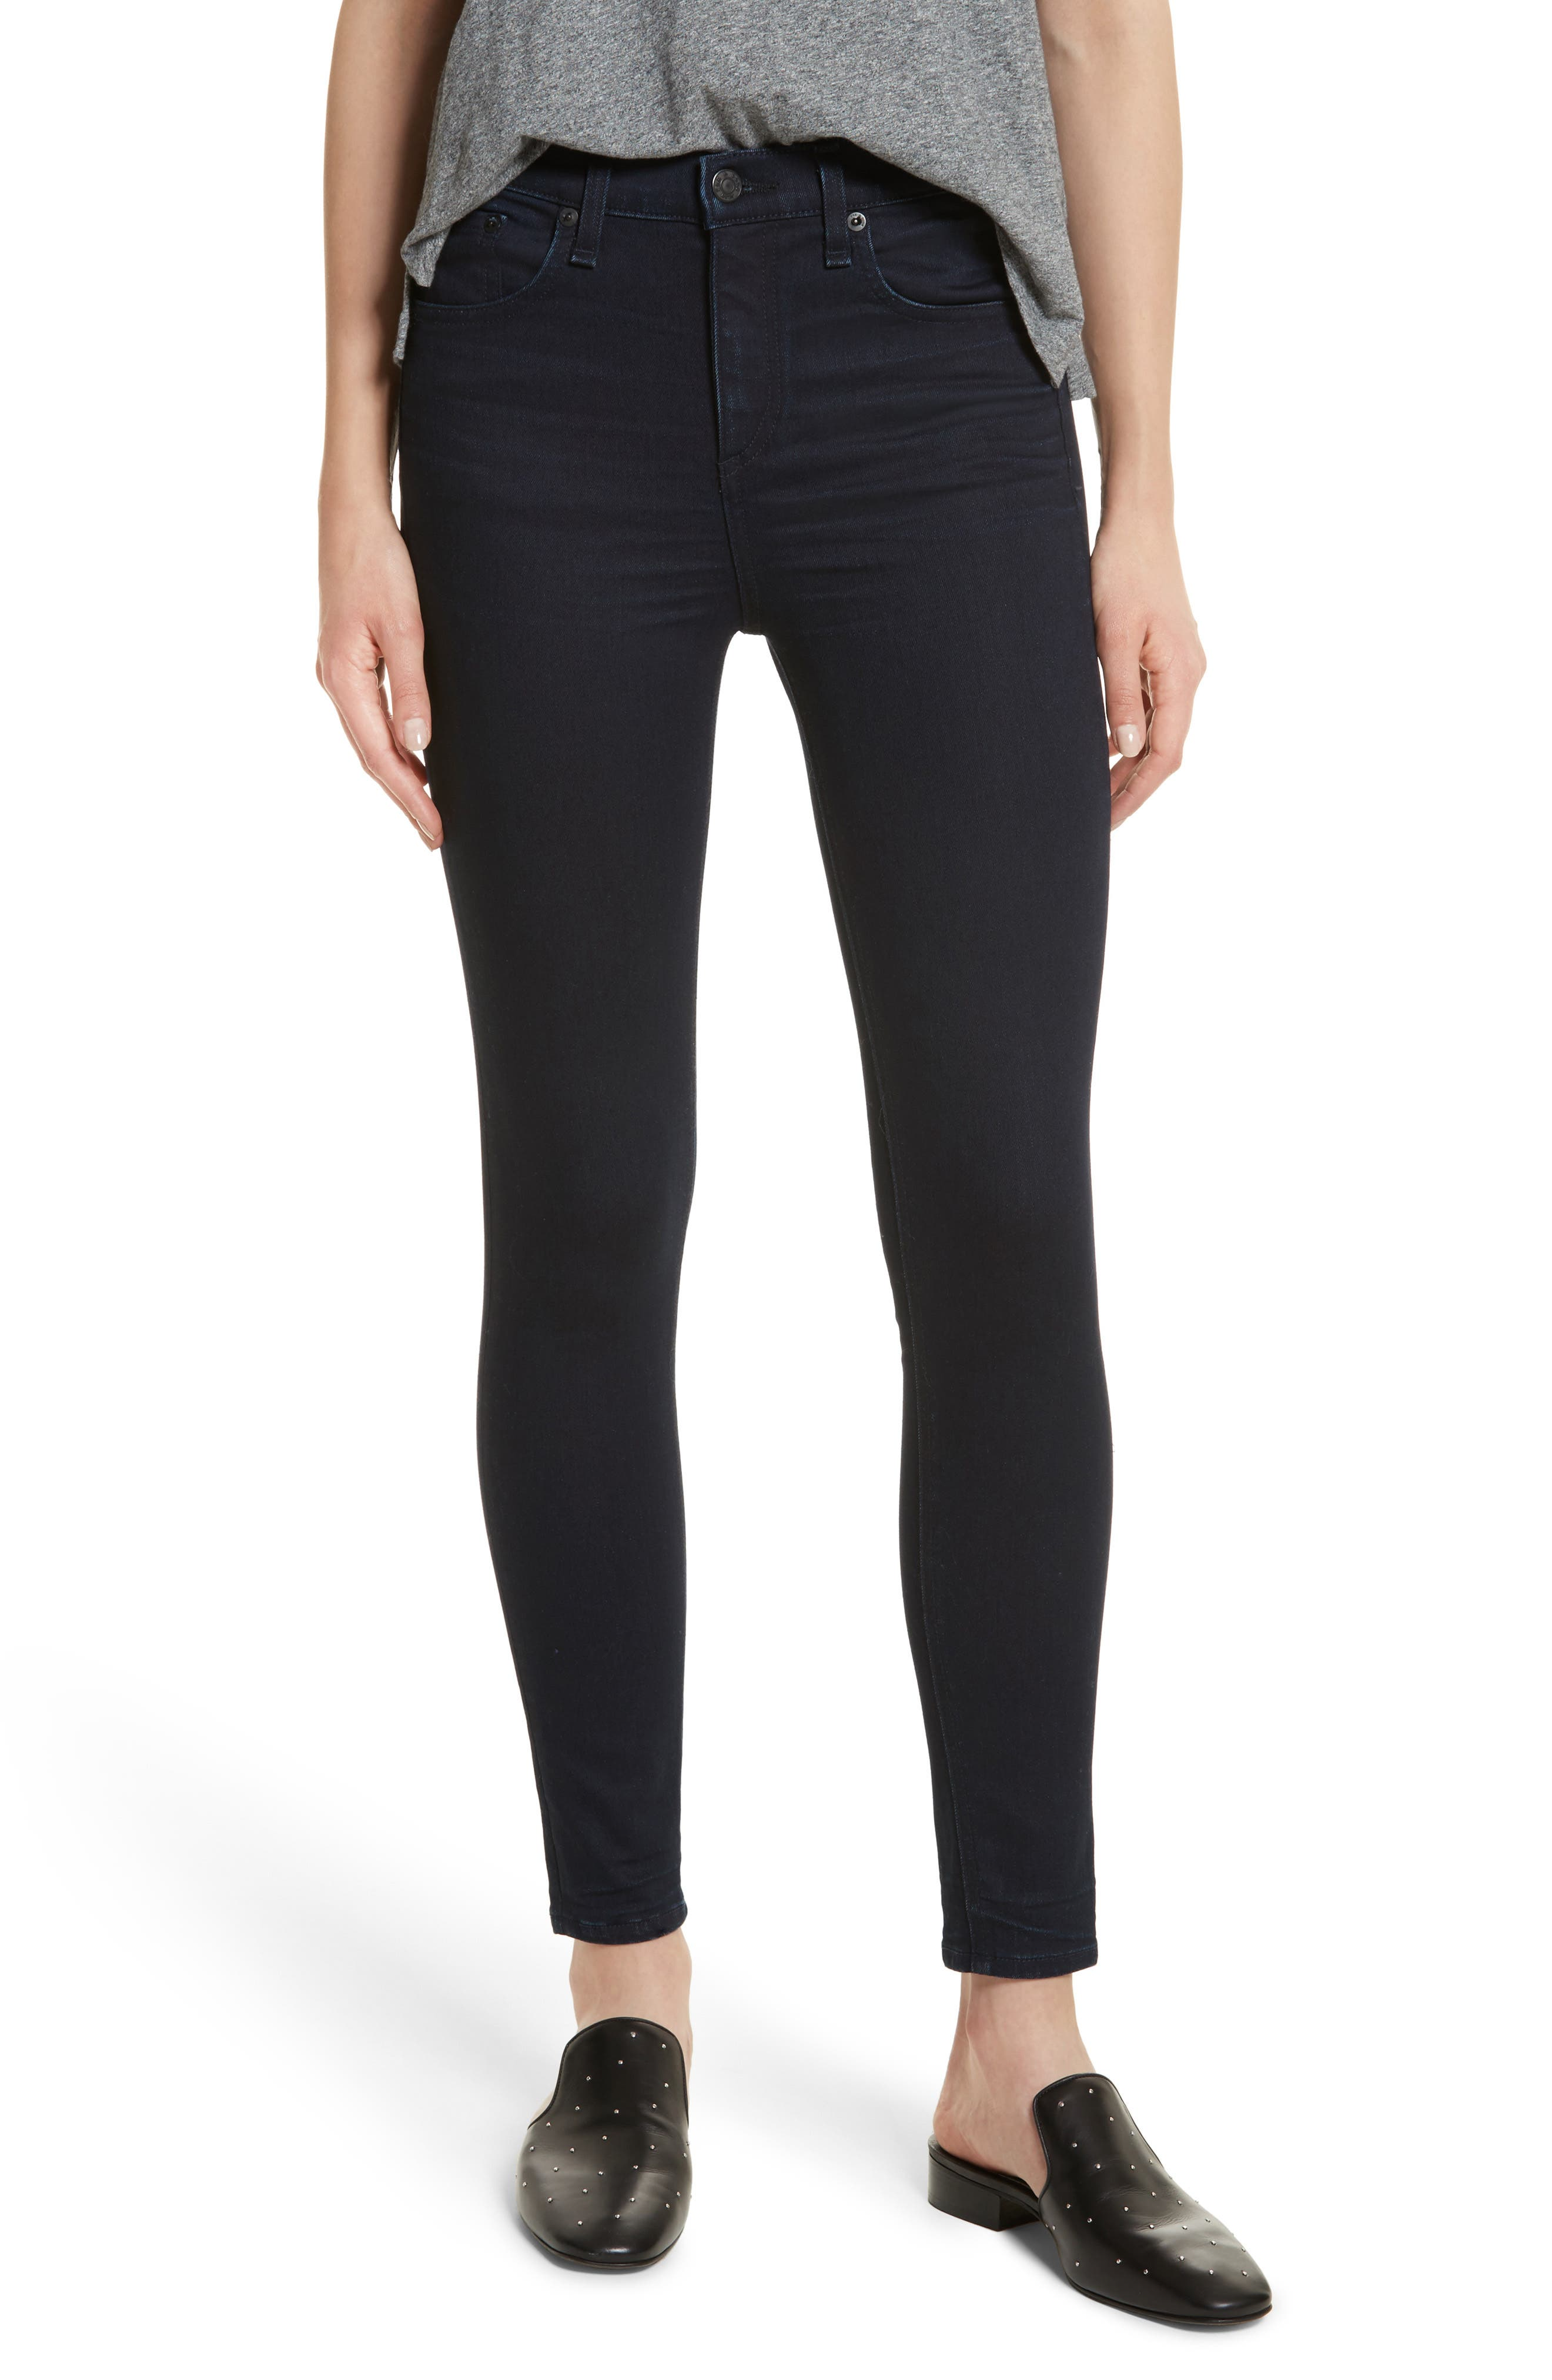 Alternate Image 1 Selected - rag & bone/JEAN High Waist Ankle Skinny Jeans (Twilight)